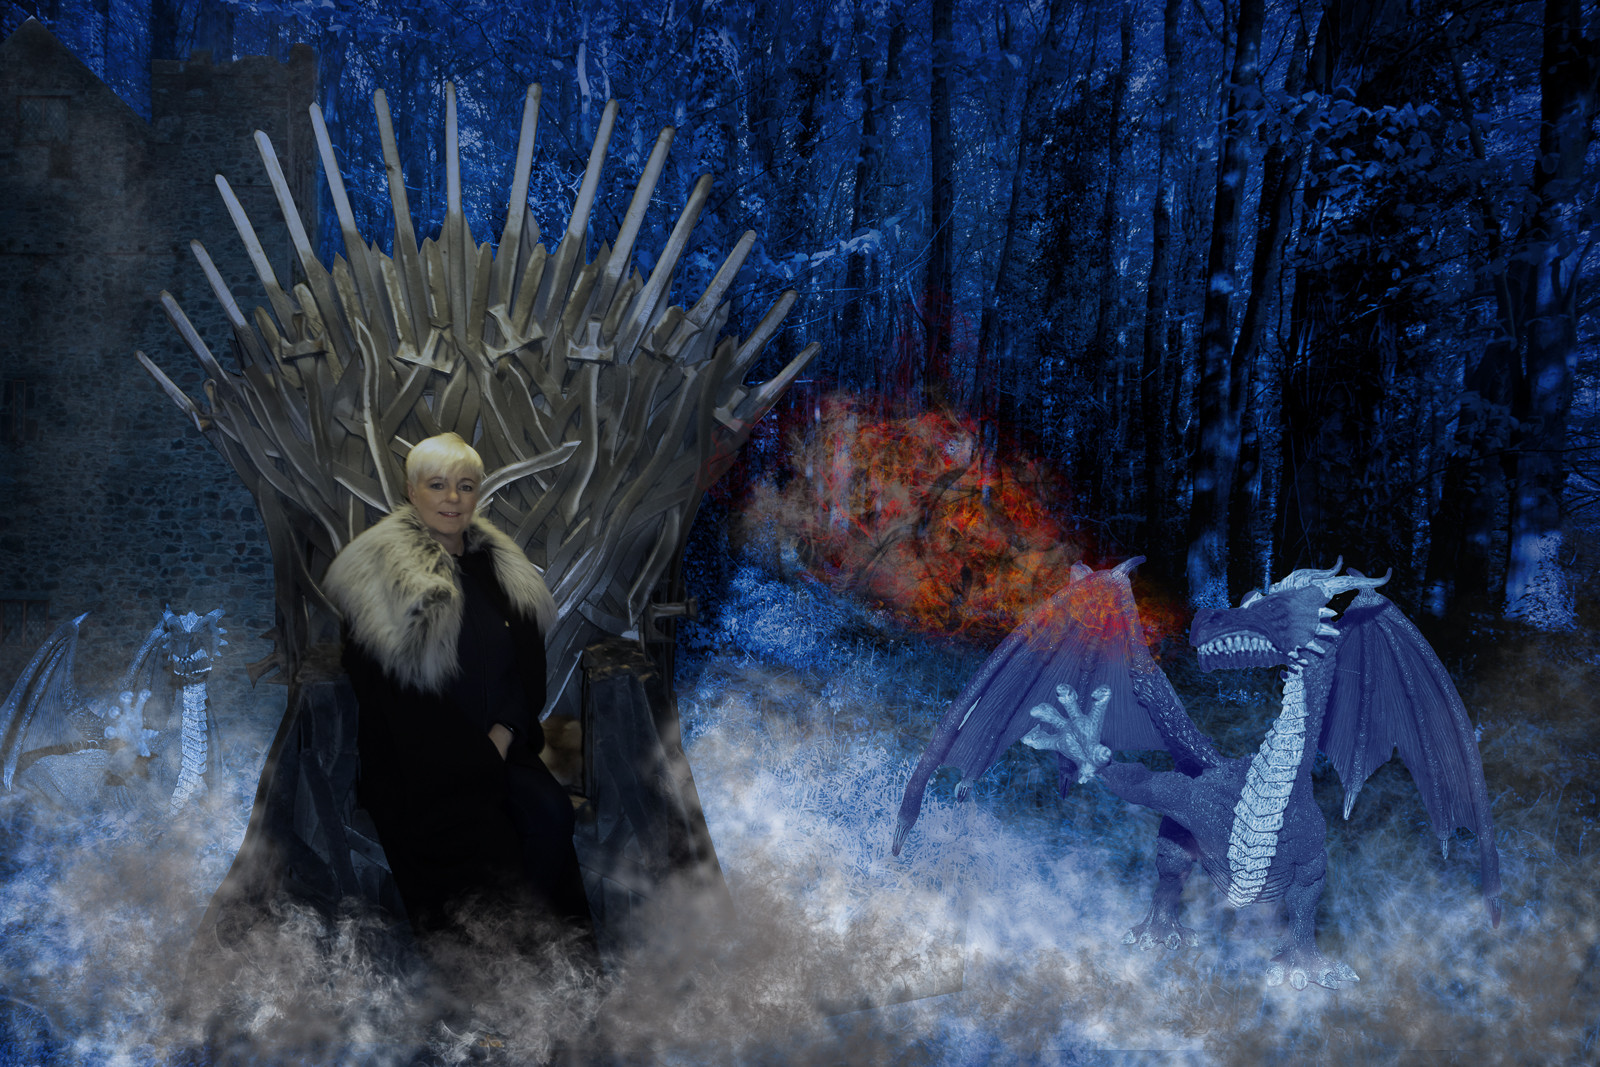 COLOUR - A Song of Ice and Fire - George RR Martin by Stephen McComb (10 marks)